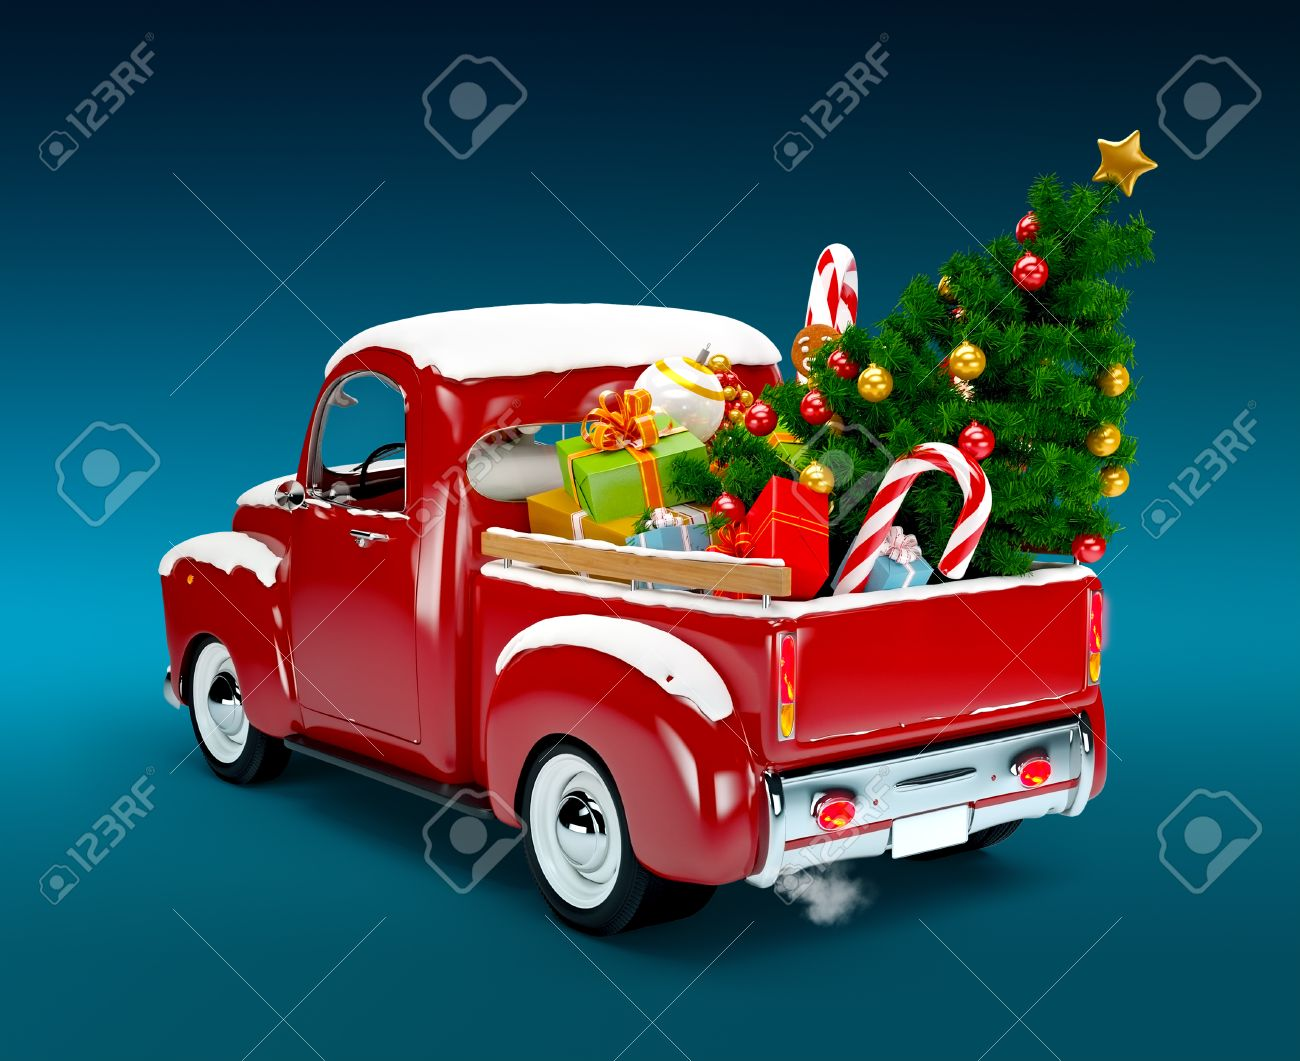 Free Christmas Tree Pick Up Part - 40: Christmas Background Pickup With Christmas Tree And Gifts Merry Christmas  And Happy New Year Stock Photo